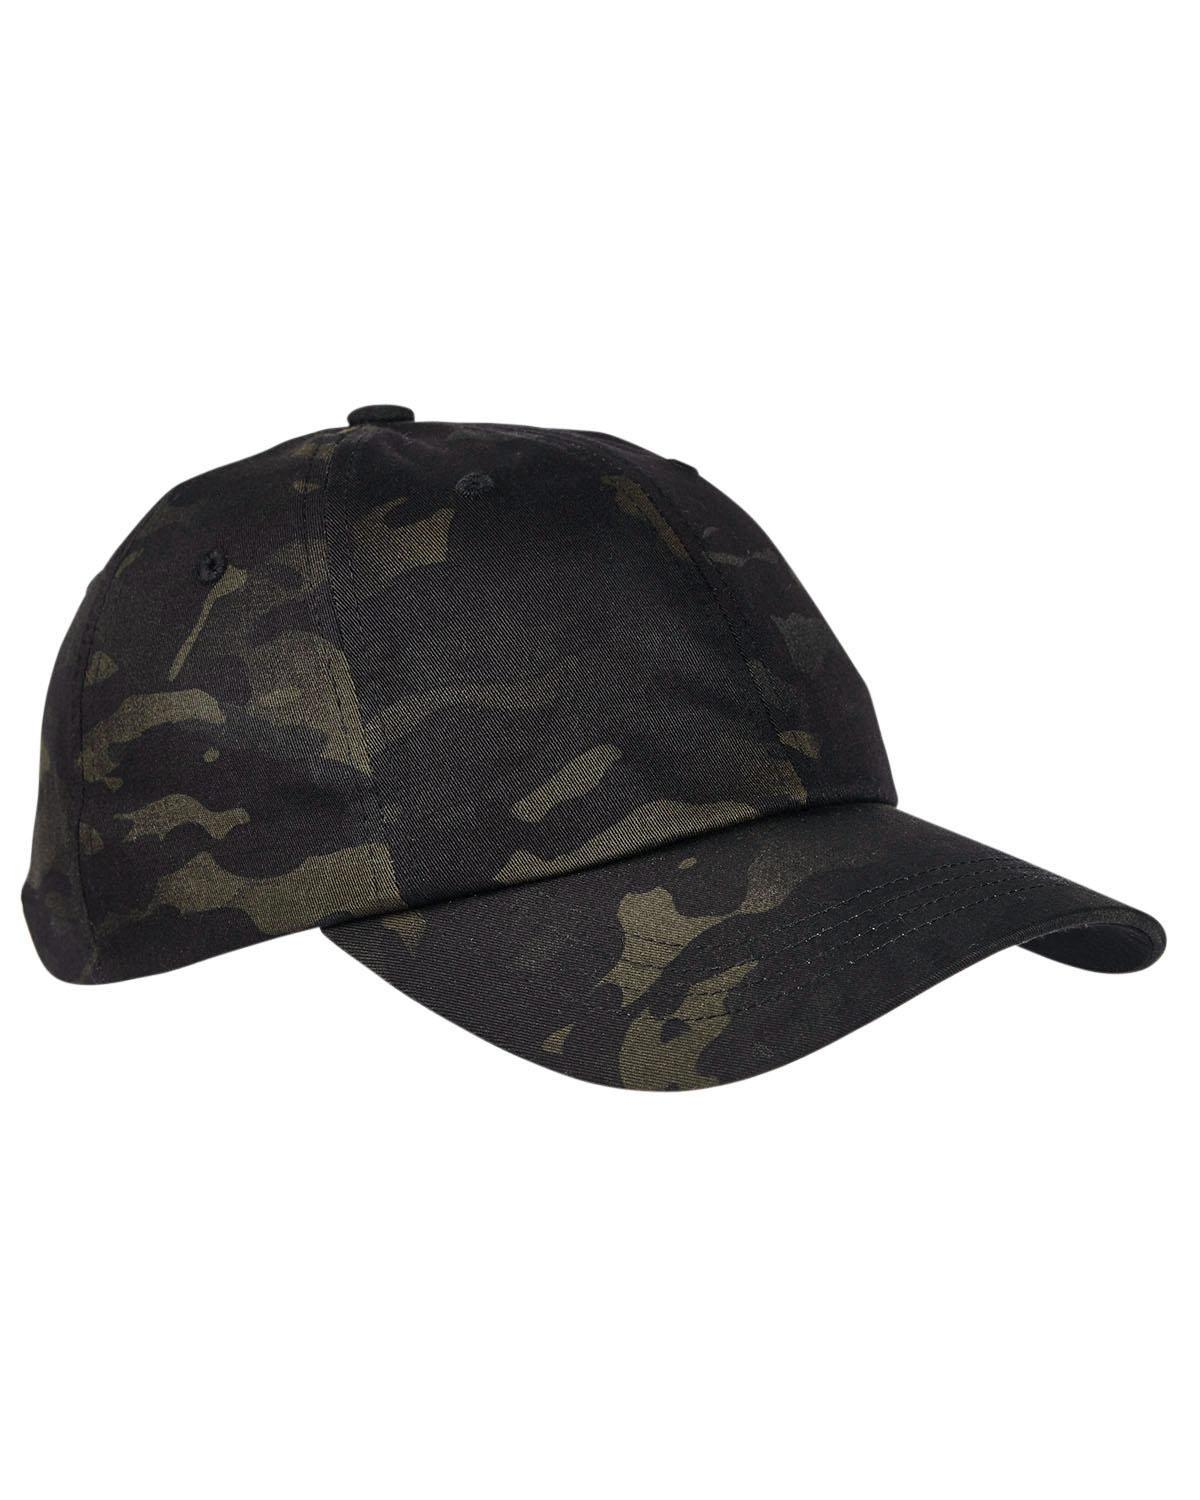 1d912544 Yupoong 6245MC Low Profile Cotton Twill Multicam Cap - Shirtmax